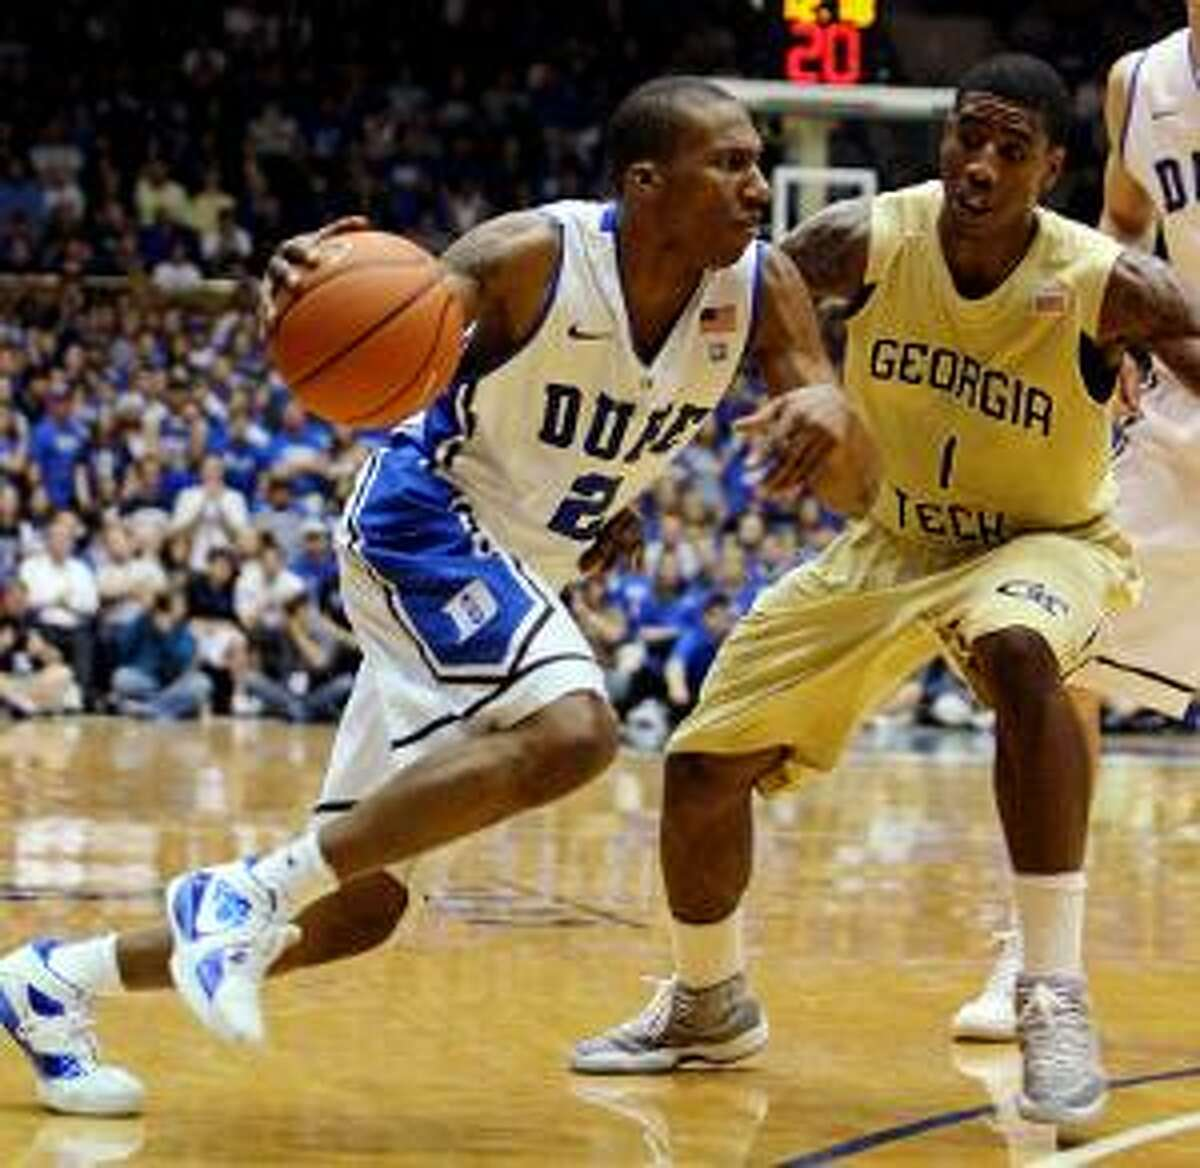 AP Duke's Nolan Smith (2) drives to the basket as Georgia Tech's Iman Shumpert (1) defends during the first half of Sunday's game Durham, N.C. The Blue Devils returned to the No. 1 ranking in the latest AP Top 25 poll.